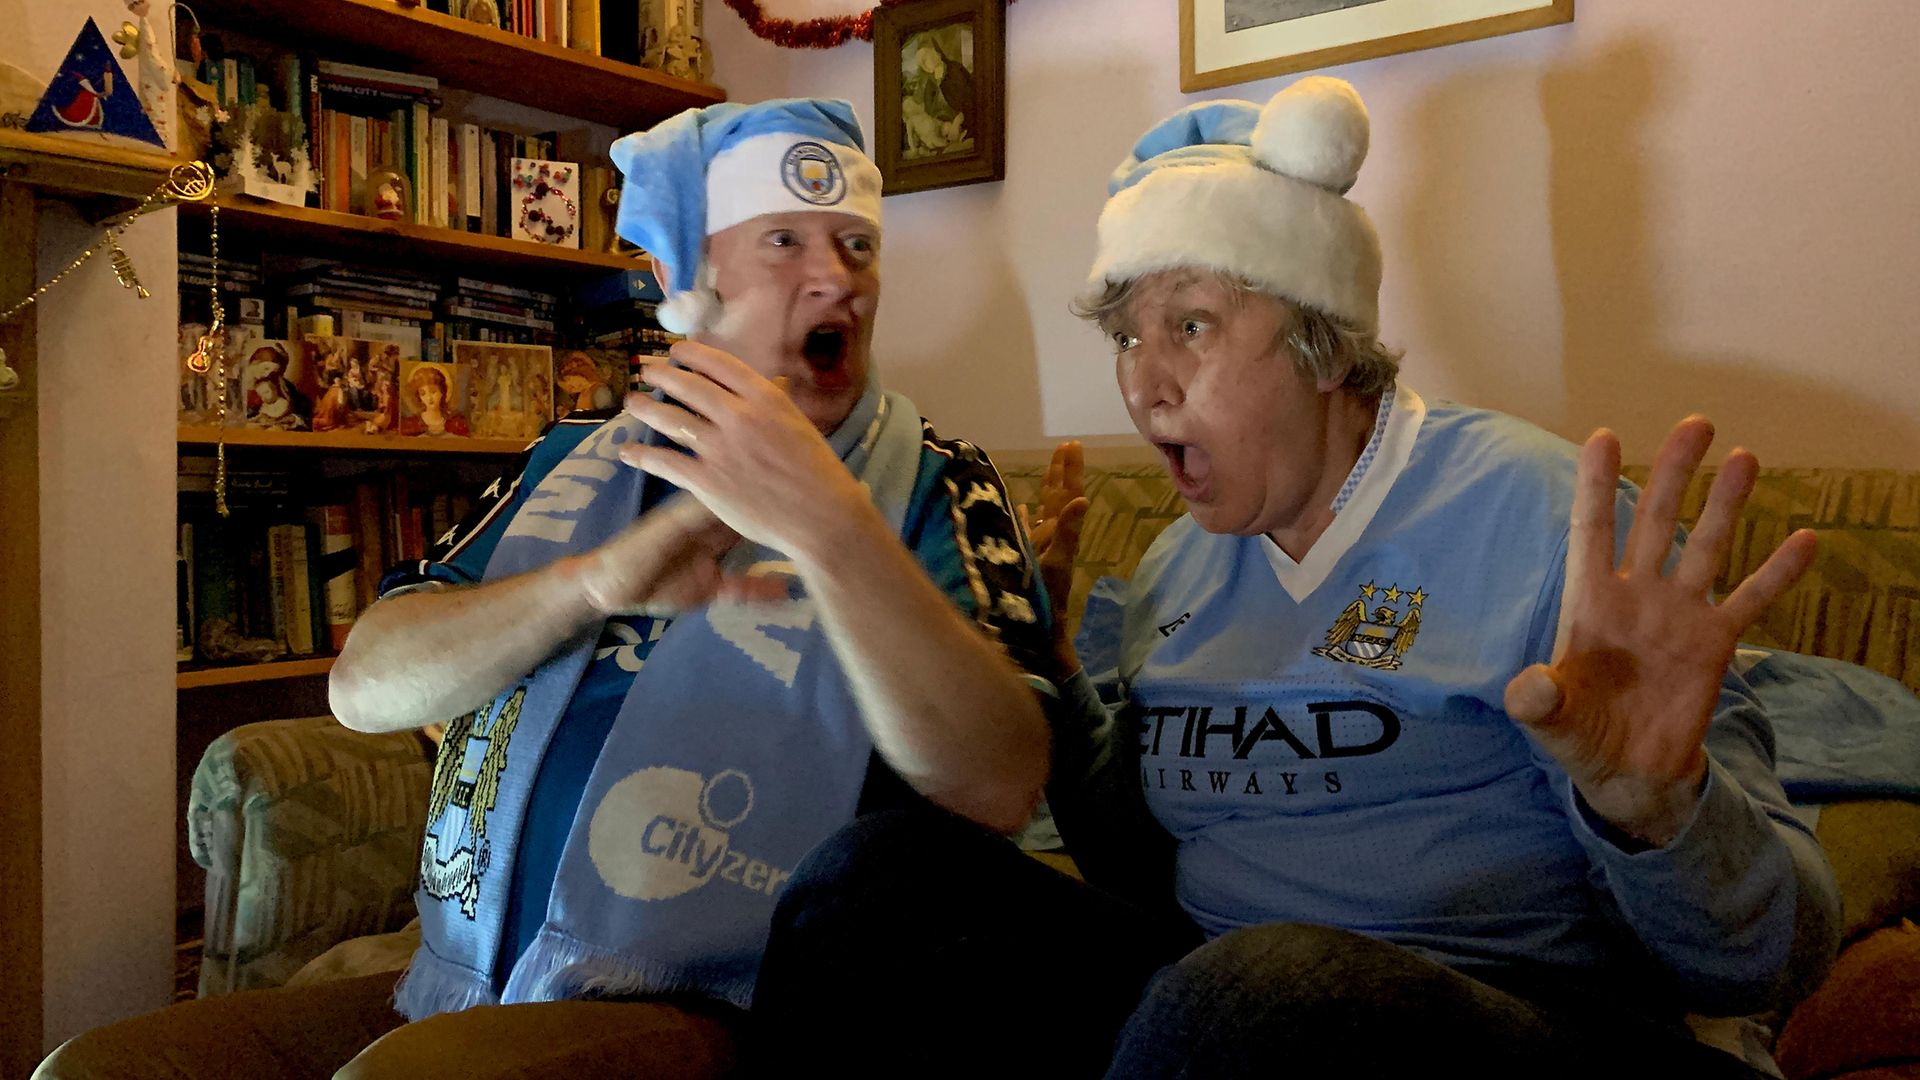 Manchester City fans in Didsbury watch their match against Southampton, December 19 - Credit: Stuart Roy Clarke